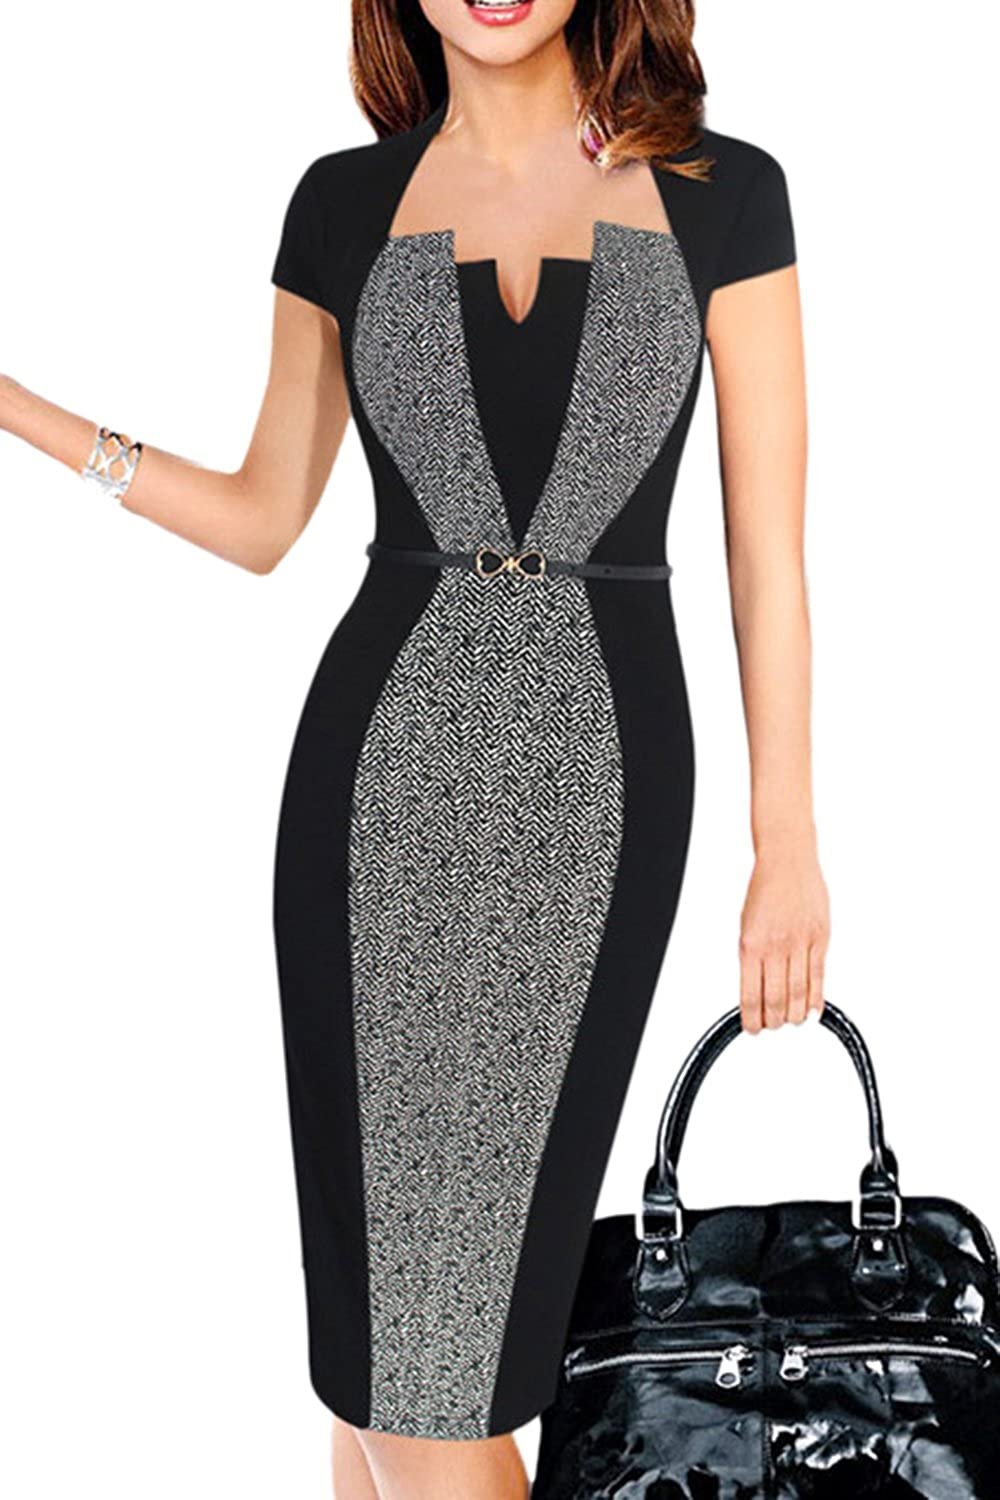 Suvimuga Womens Work Dress Office Cocktail Short Sleeve Bodycon Pencil Dresses